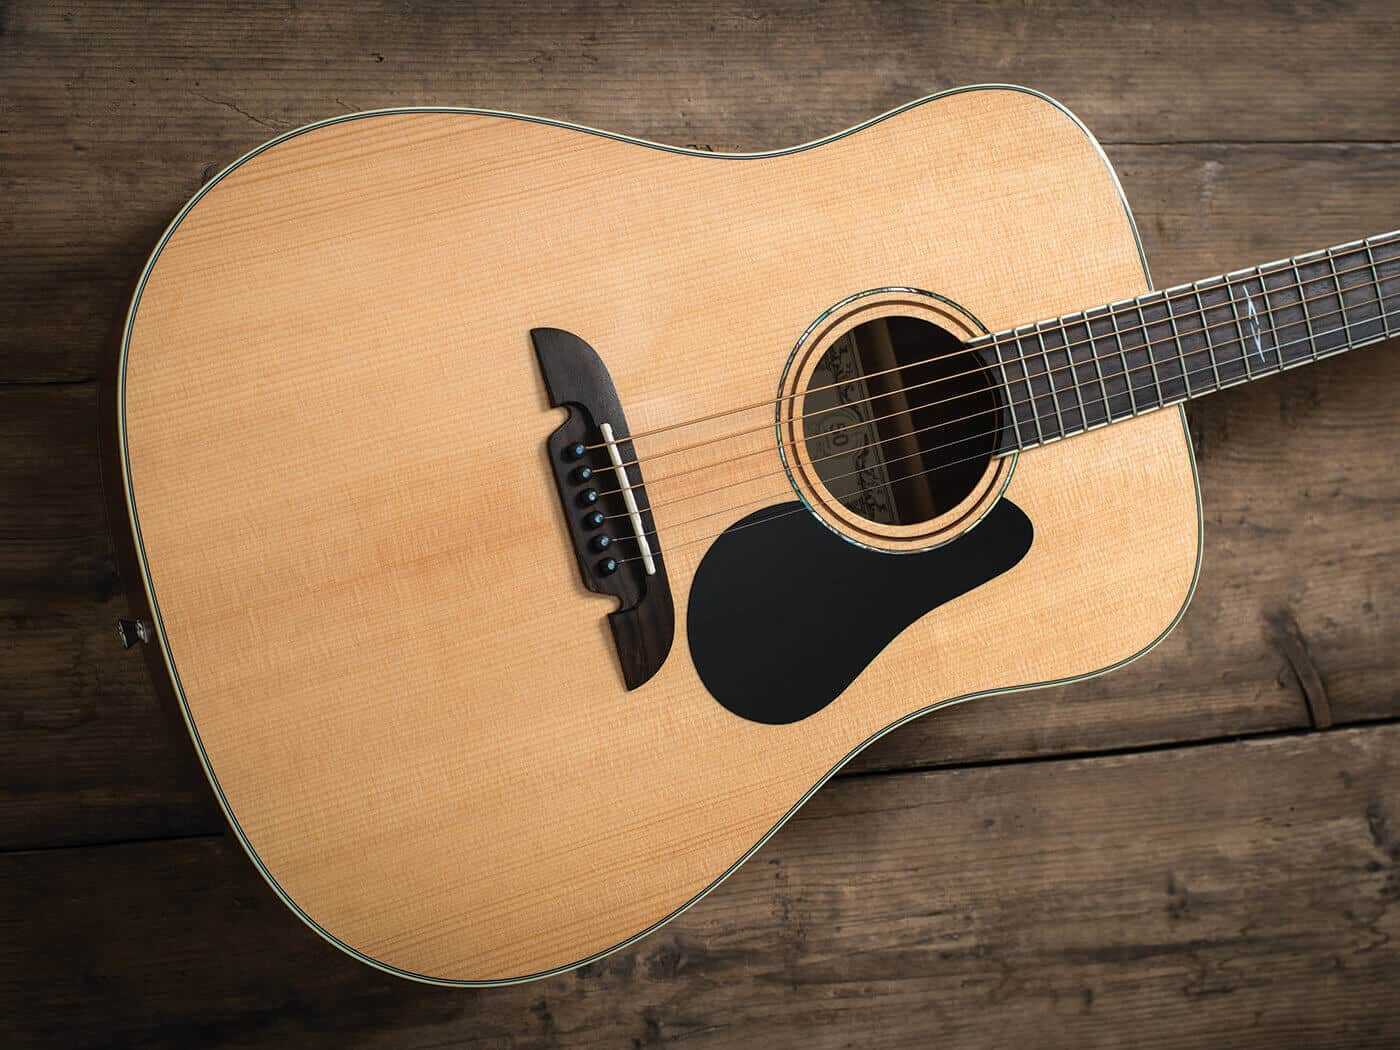 Alvarez Artist Series AD60 Dreadnought Guitar -1